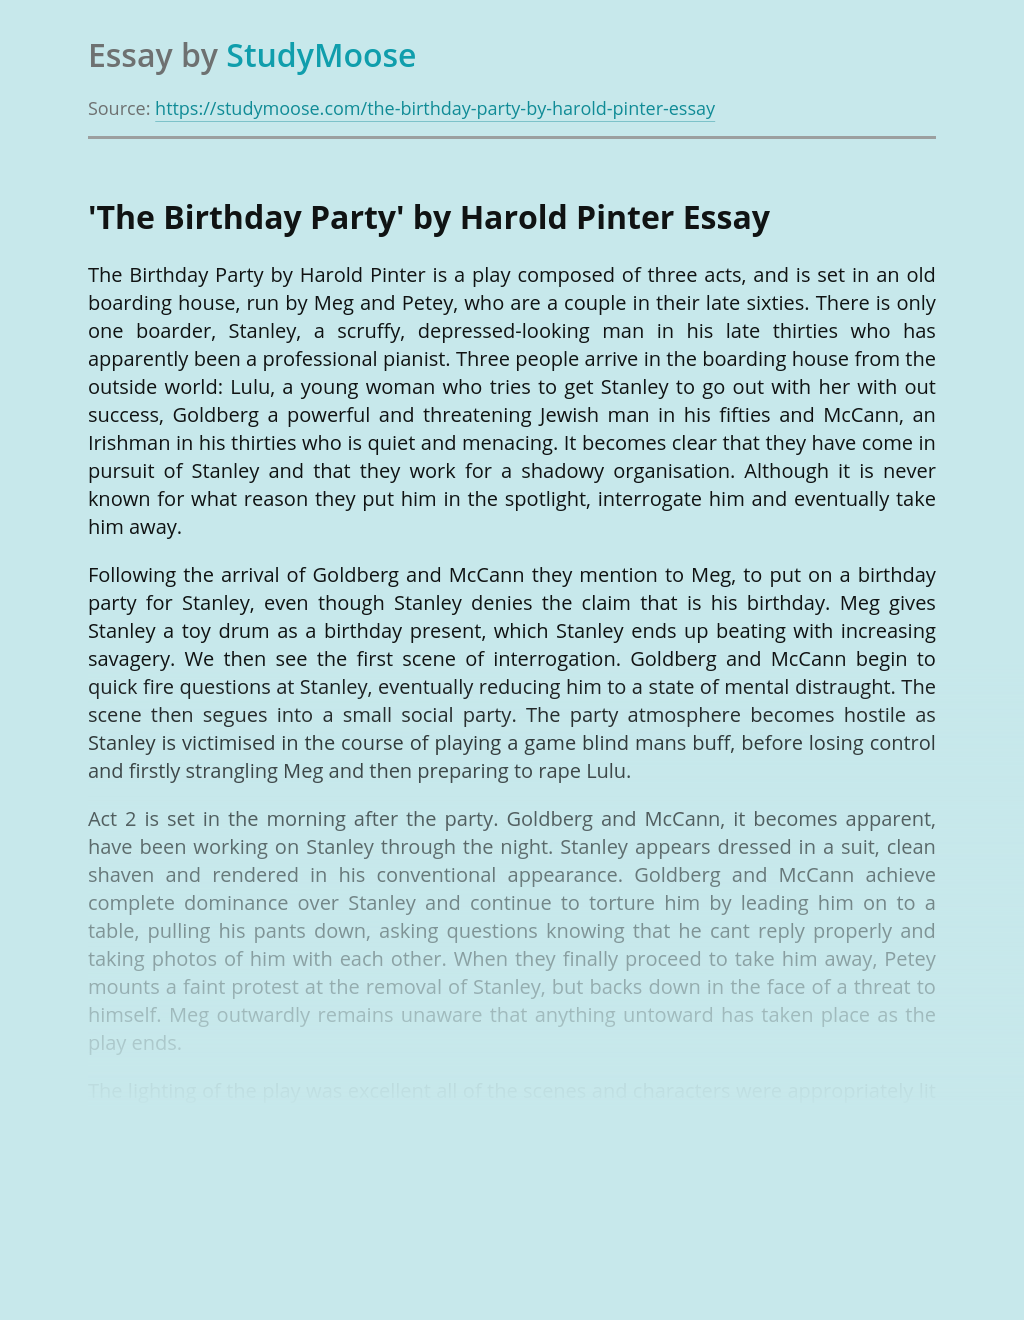 'The Birthday Party' by Harold Pinter